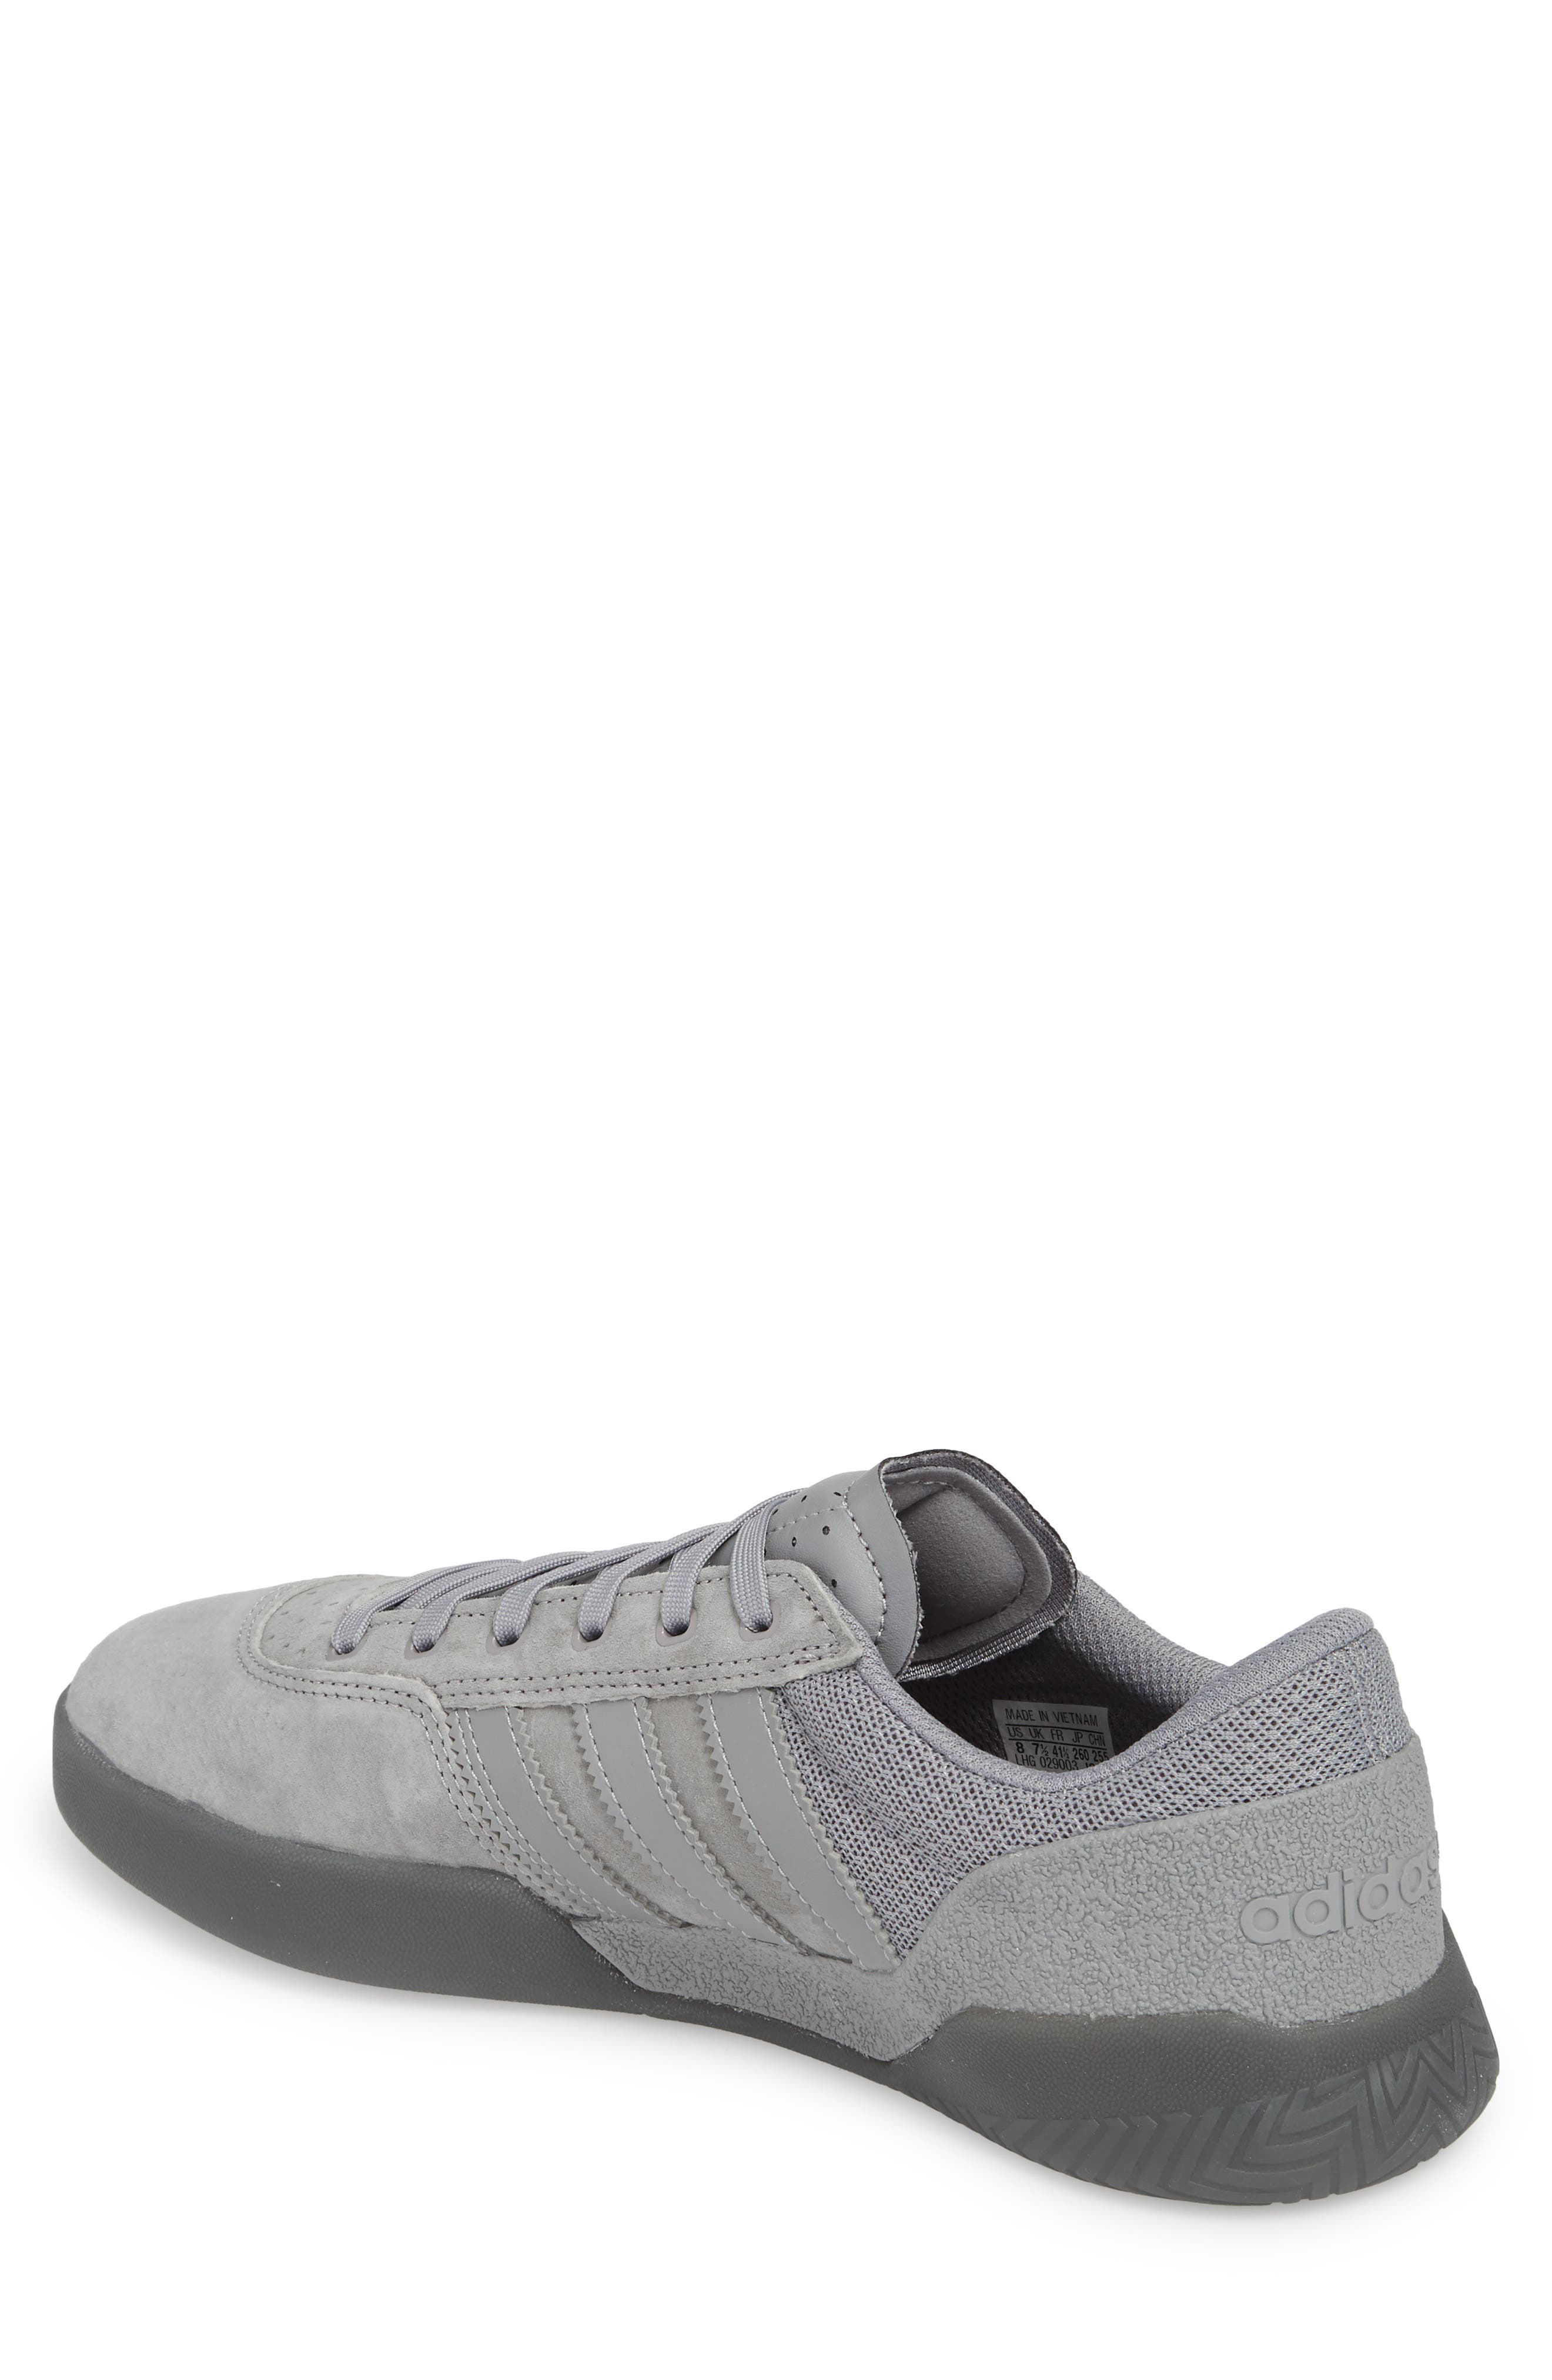 City Cup Sneaker,                             Alternate thumbnail 2, color,                             Grey/ Gold